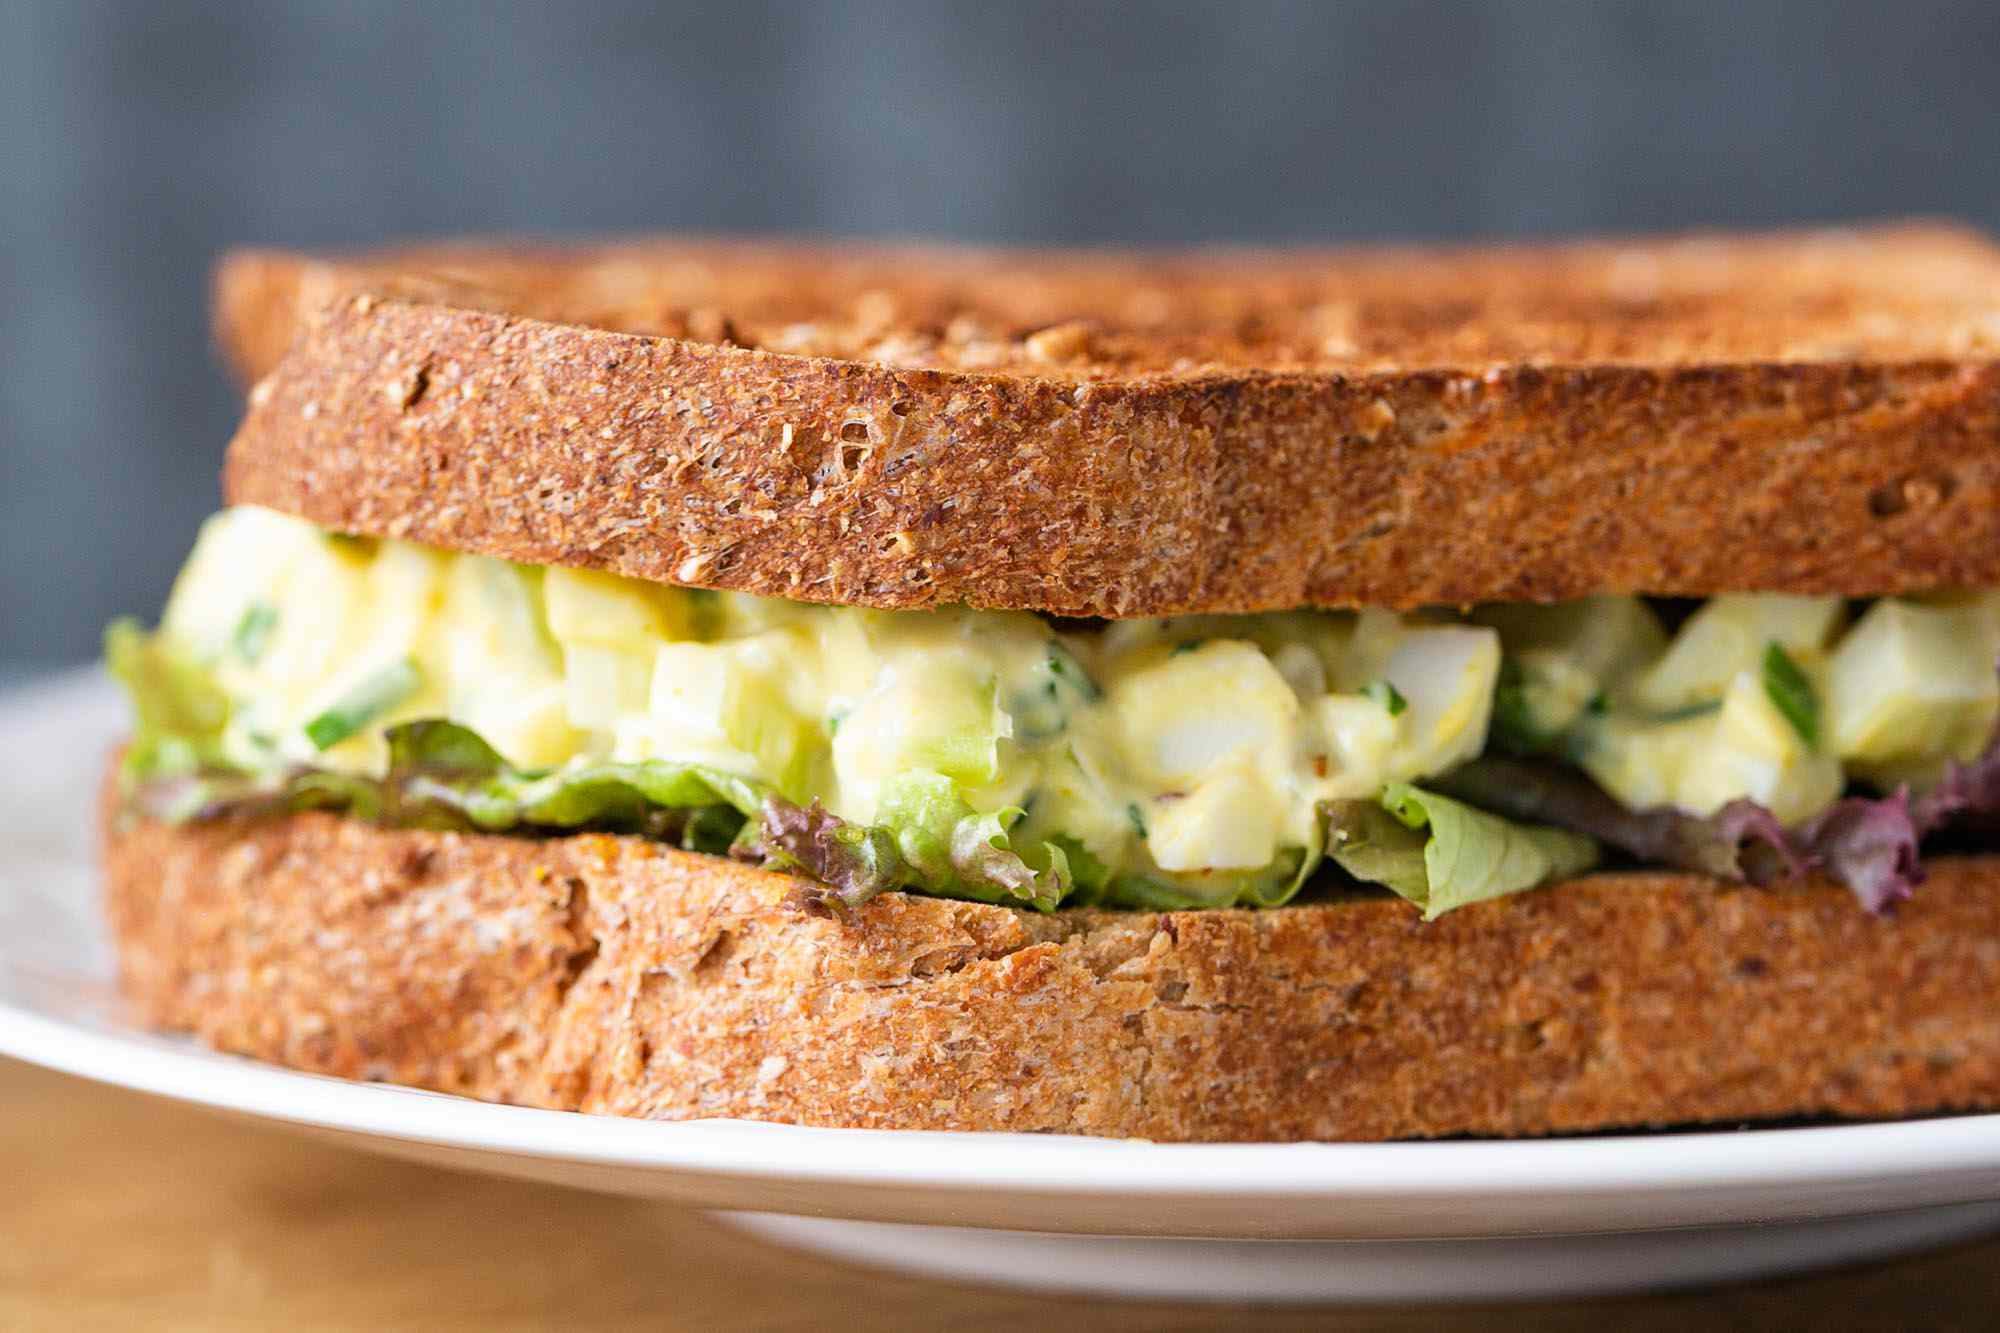 Homemade egg salad sandwich on a plate with a leaf of lettuce